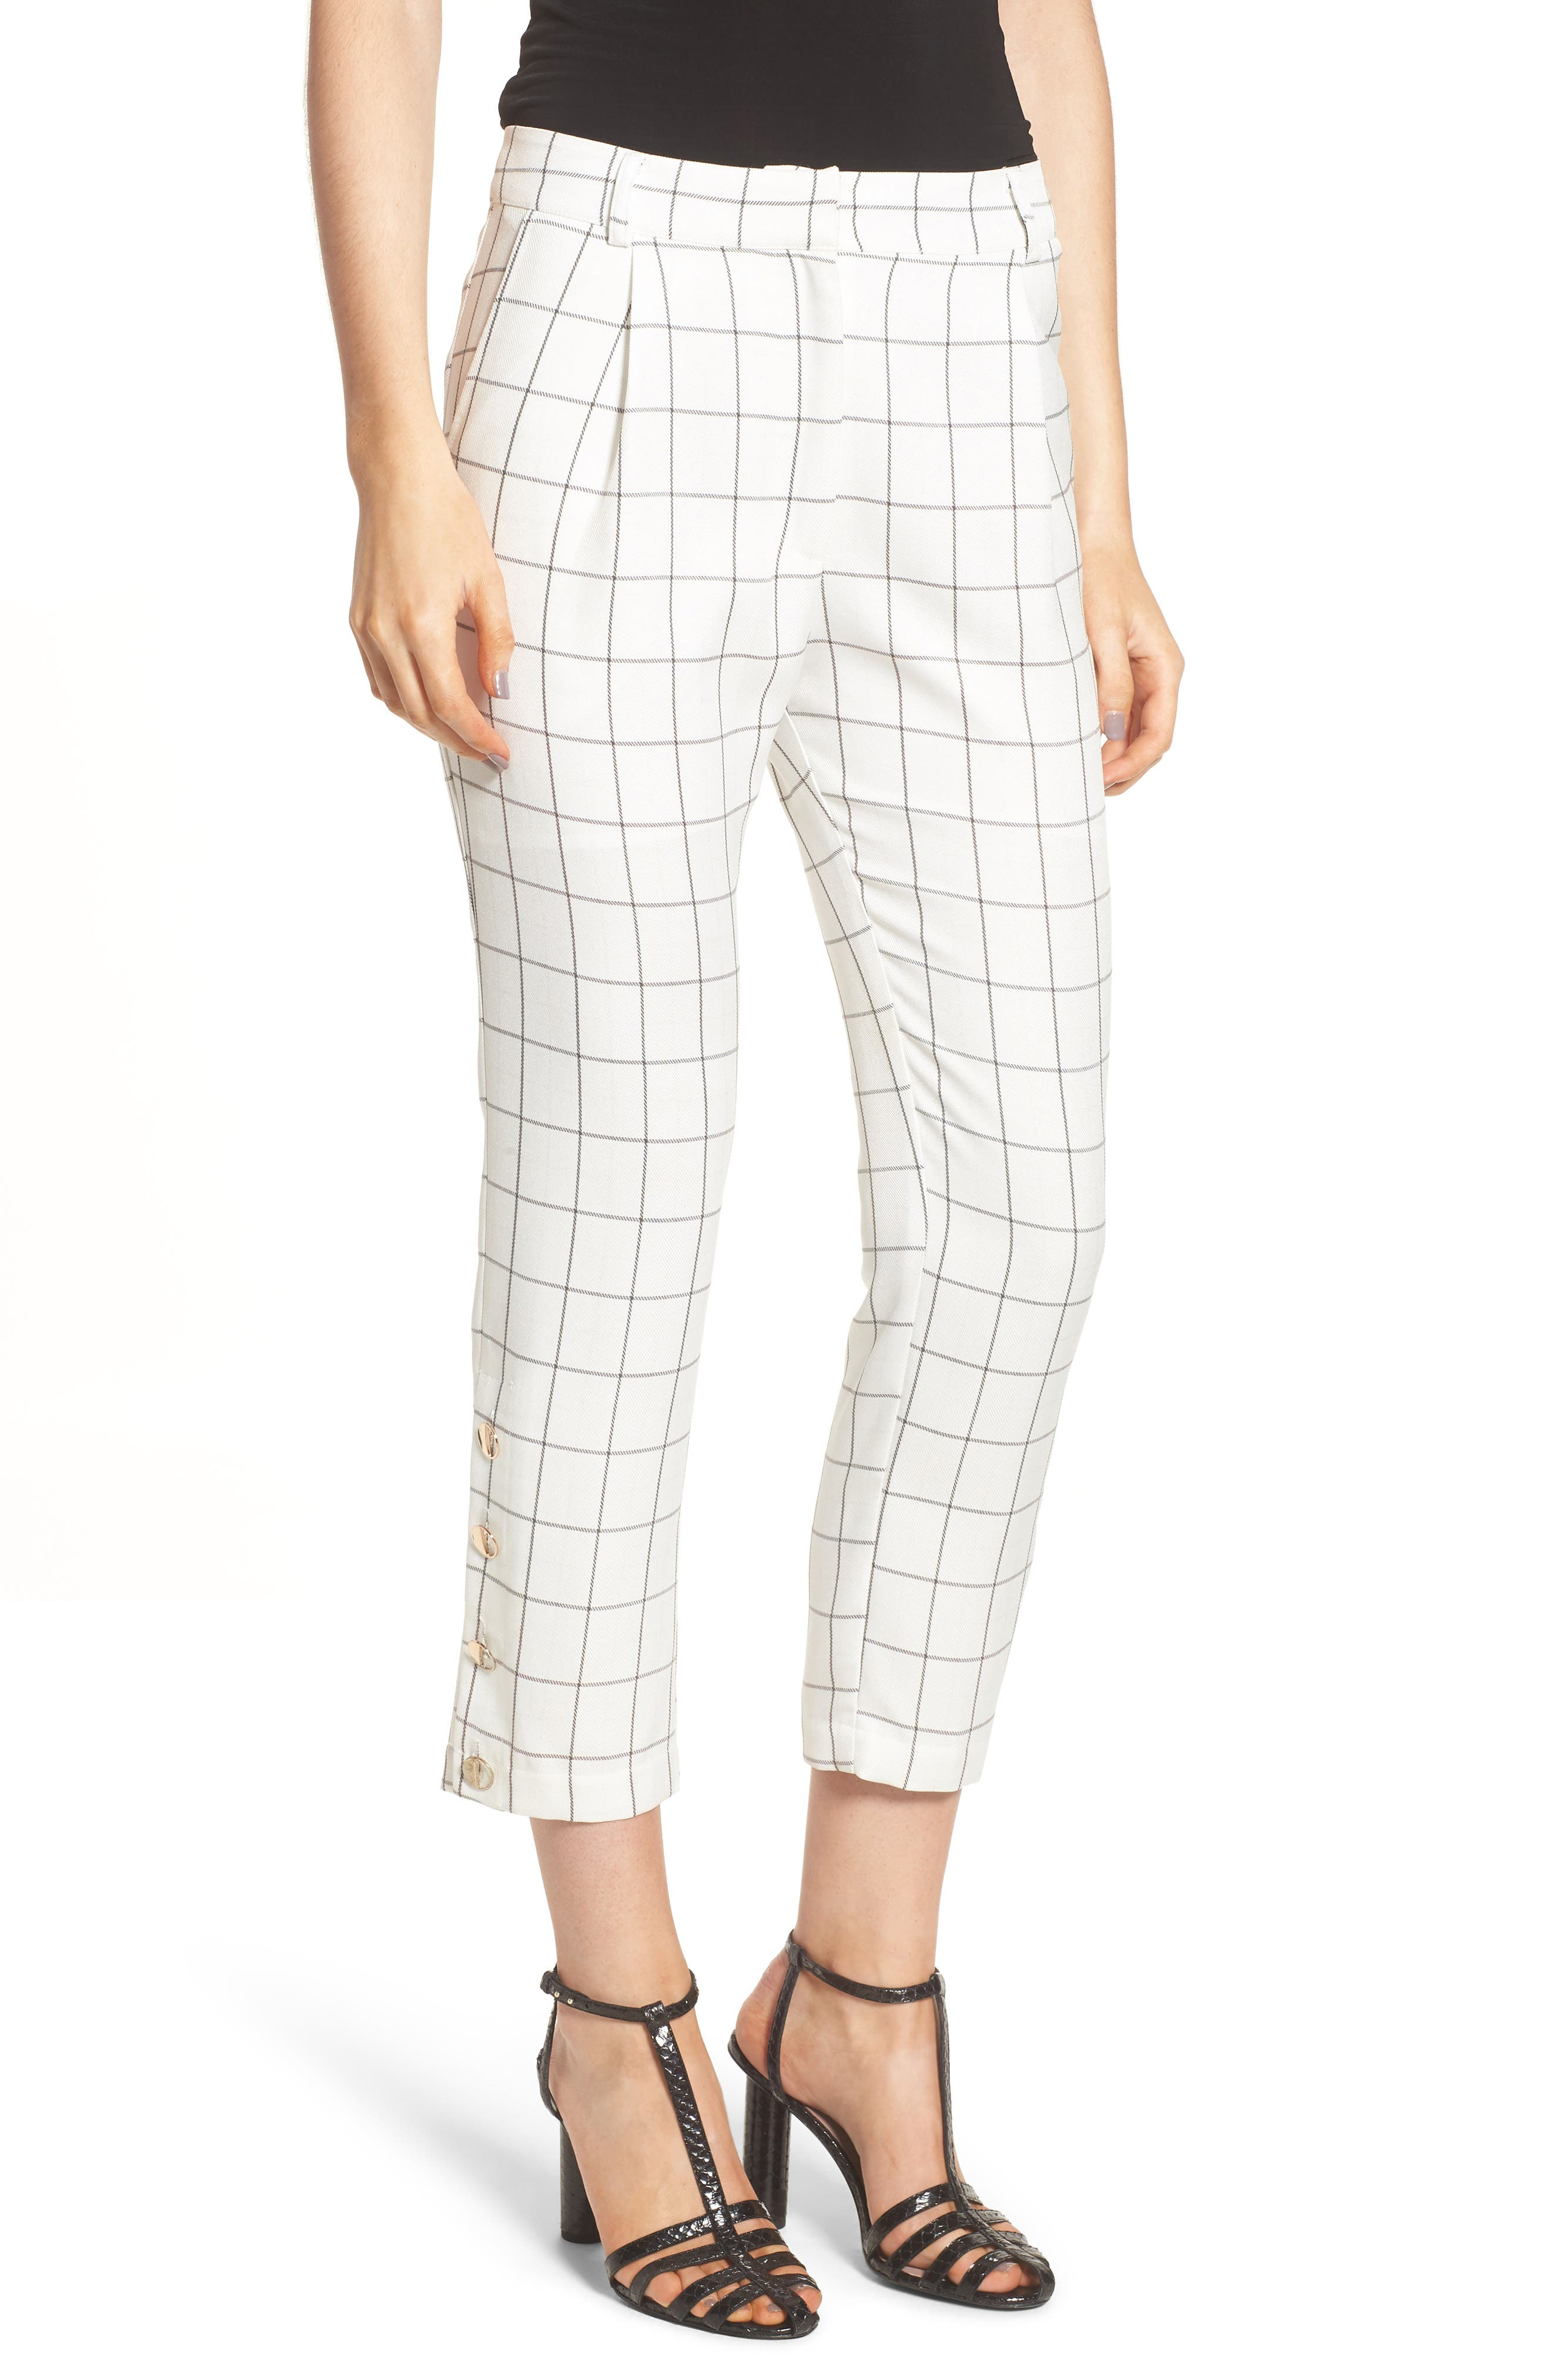 Chriselle x J.O.A. High Waist Ankle Skinny Trousers,                         Main,                         color, White